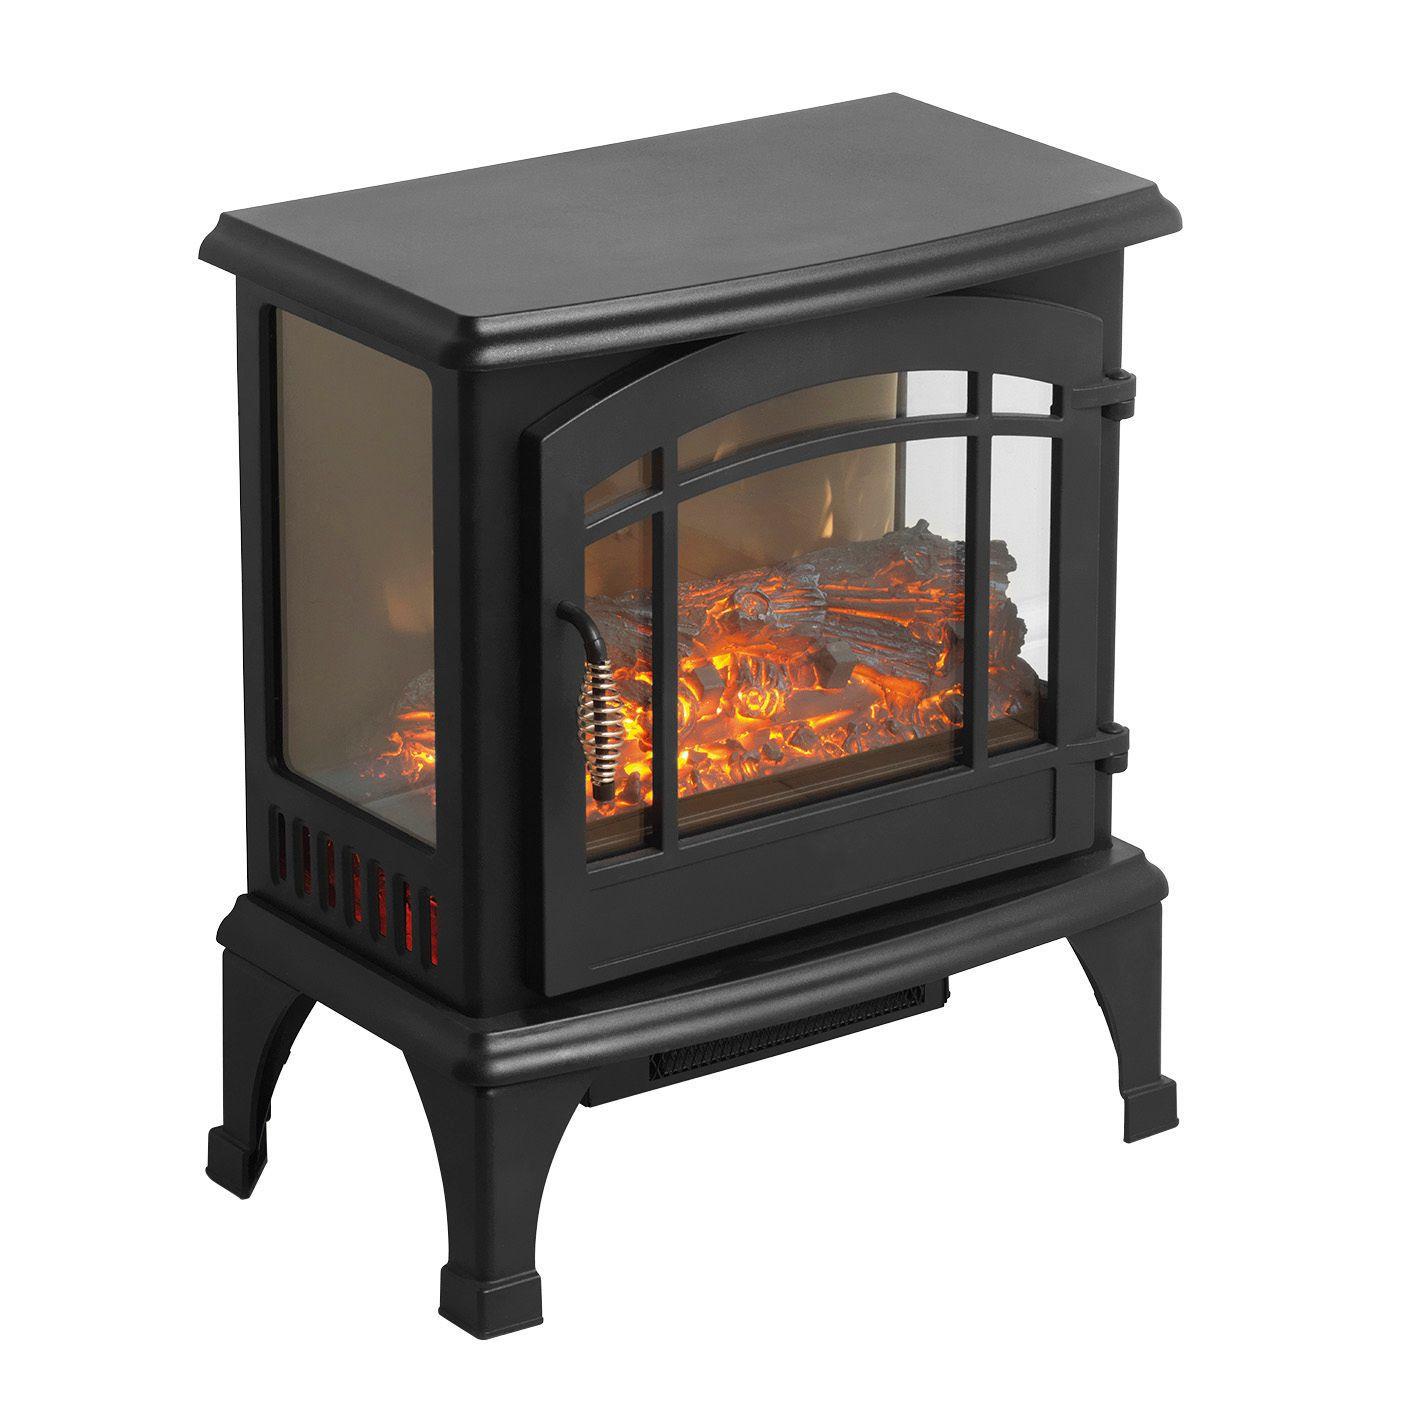 alameda electric fires optimyst space shop turfrey fireplace image with fire product dimplex heater mantle heating